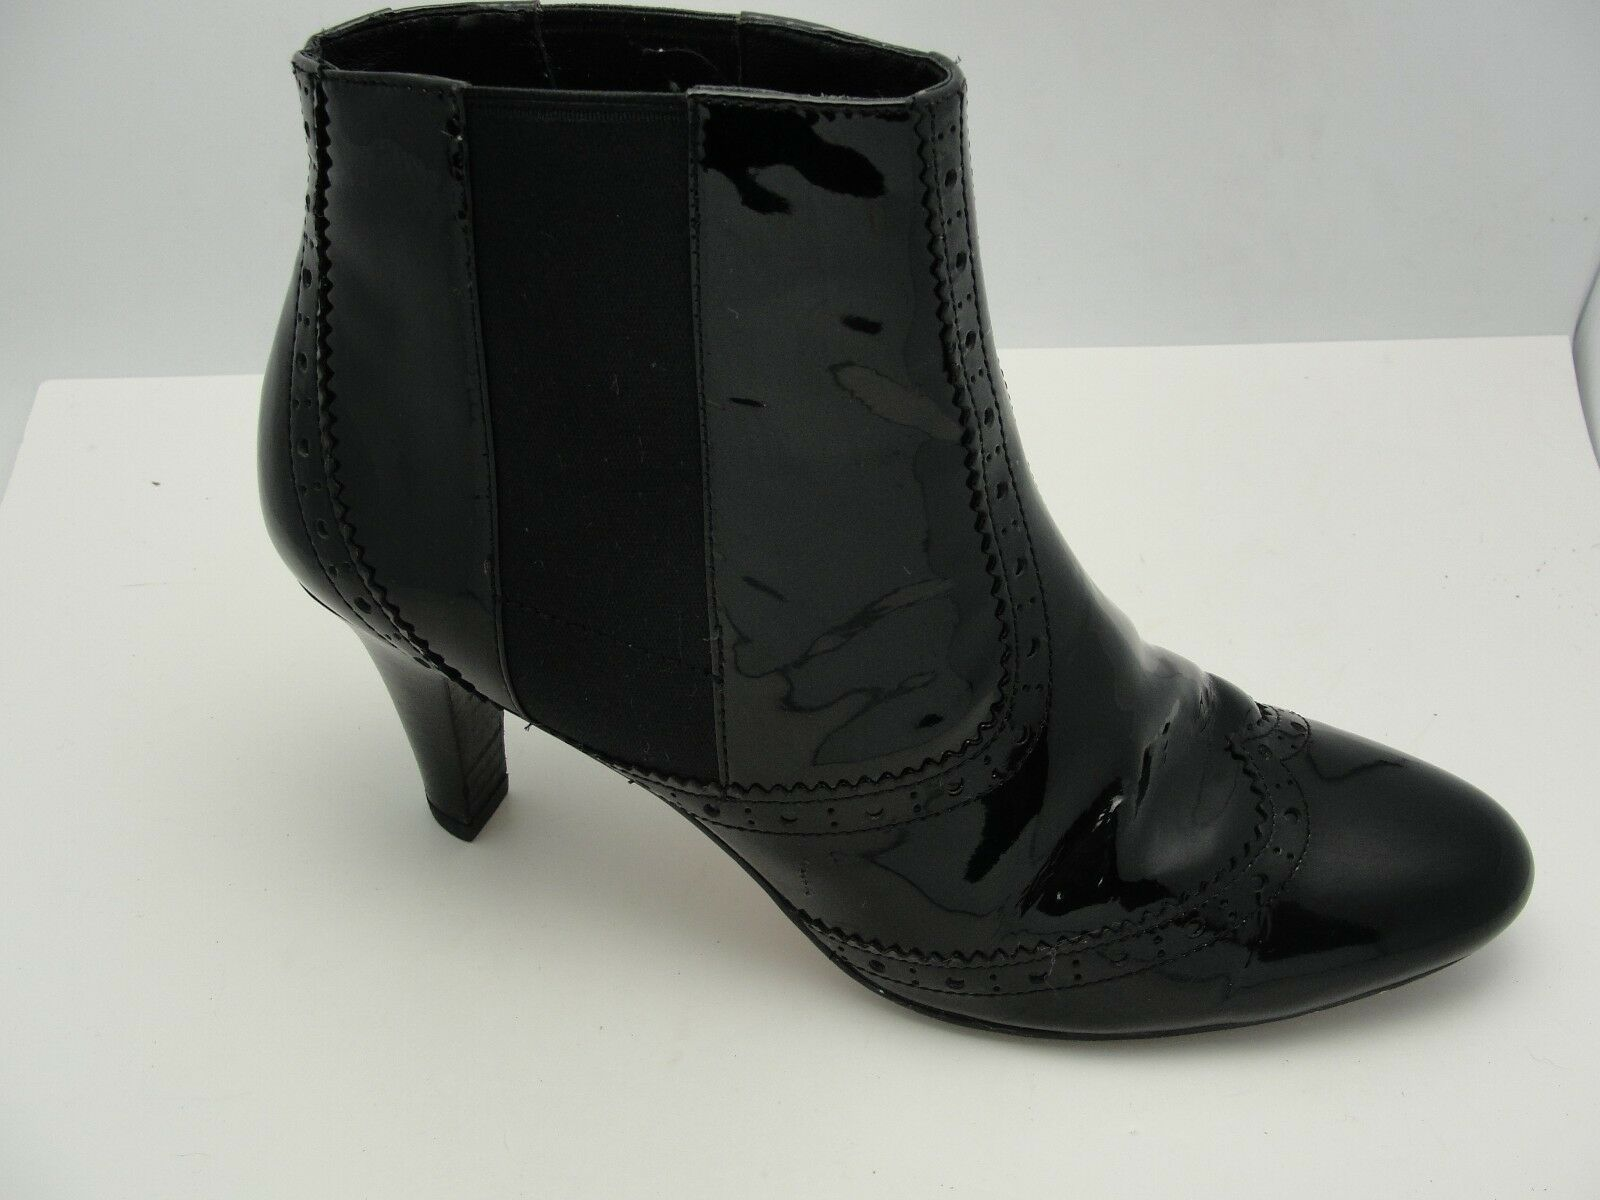 Cole Haan Black Patent Leather Wingtip Spectator Ankle Booties Heels Sz 6.5 B